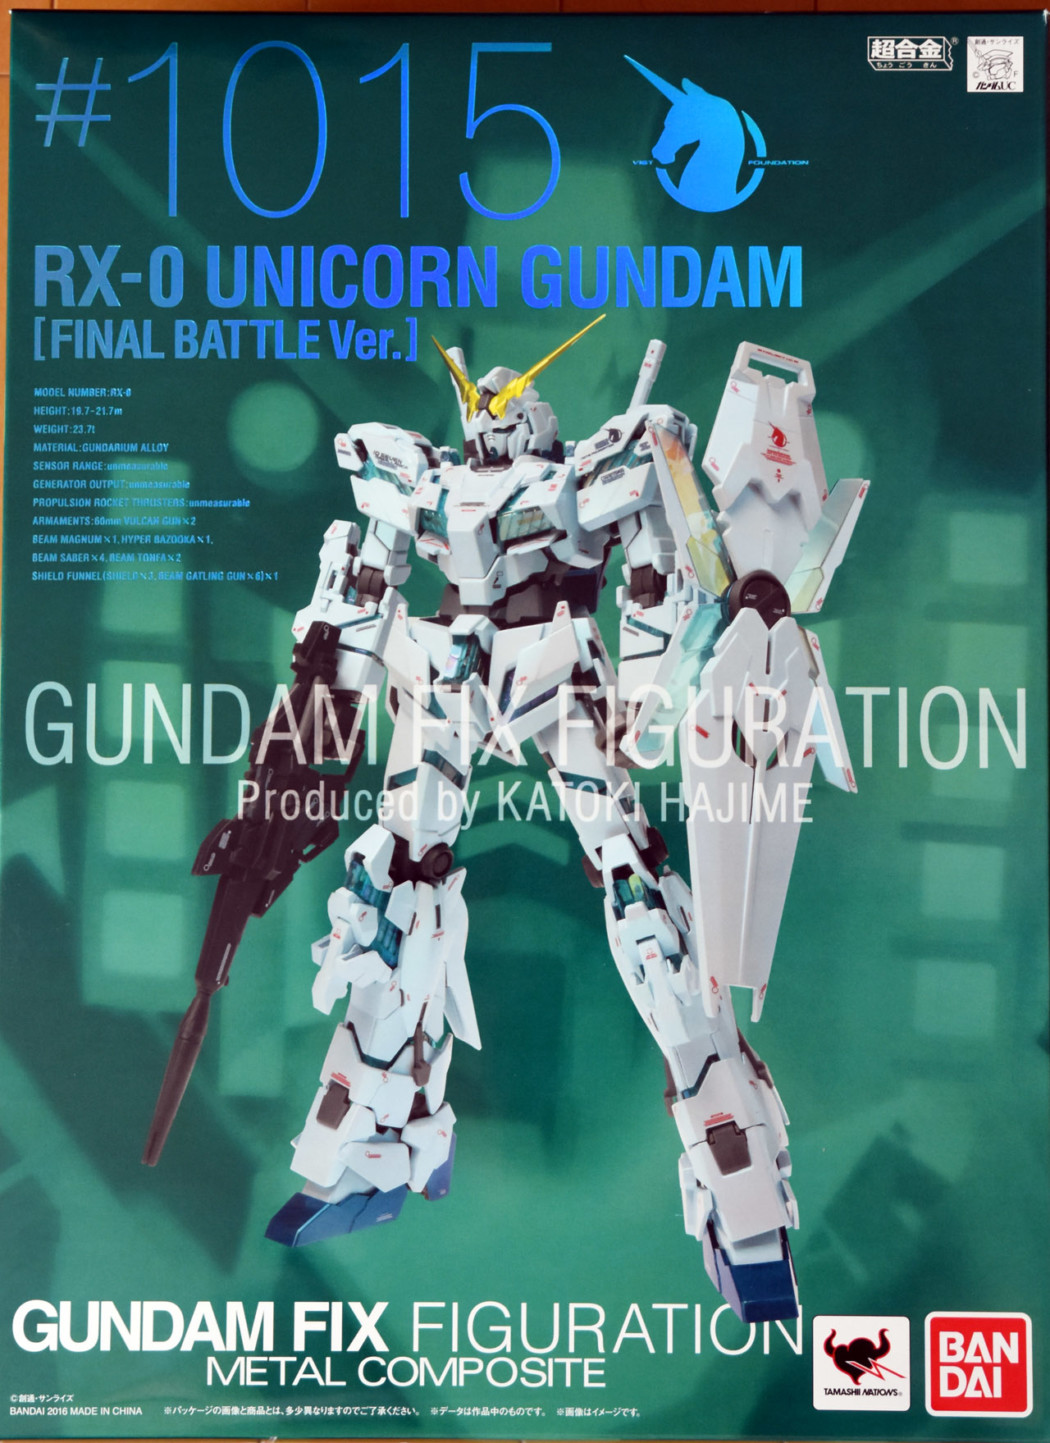 Metal Composite Unicorn Gundam Final Battle Ver. by Bandai (Part 1: Unbox)